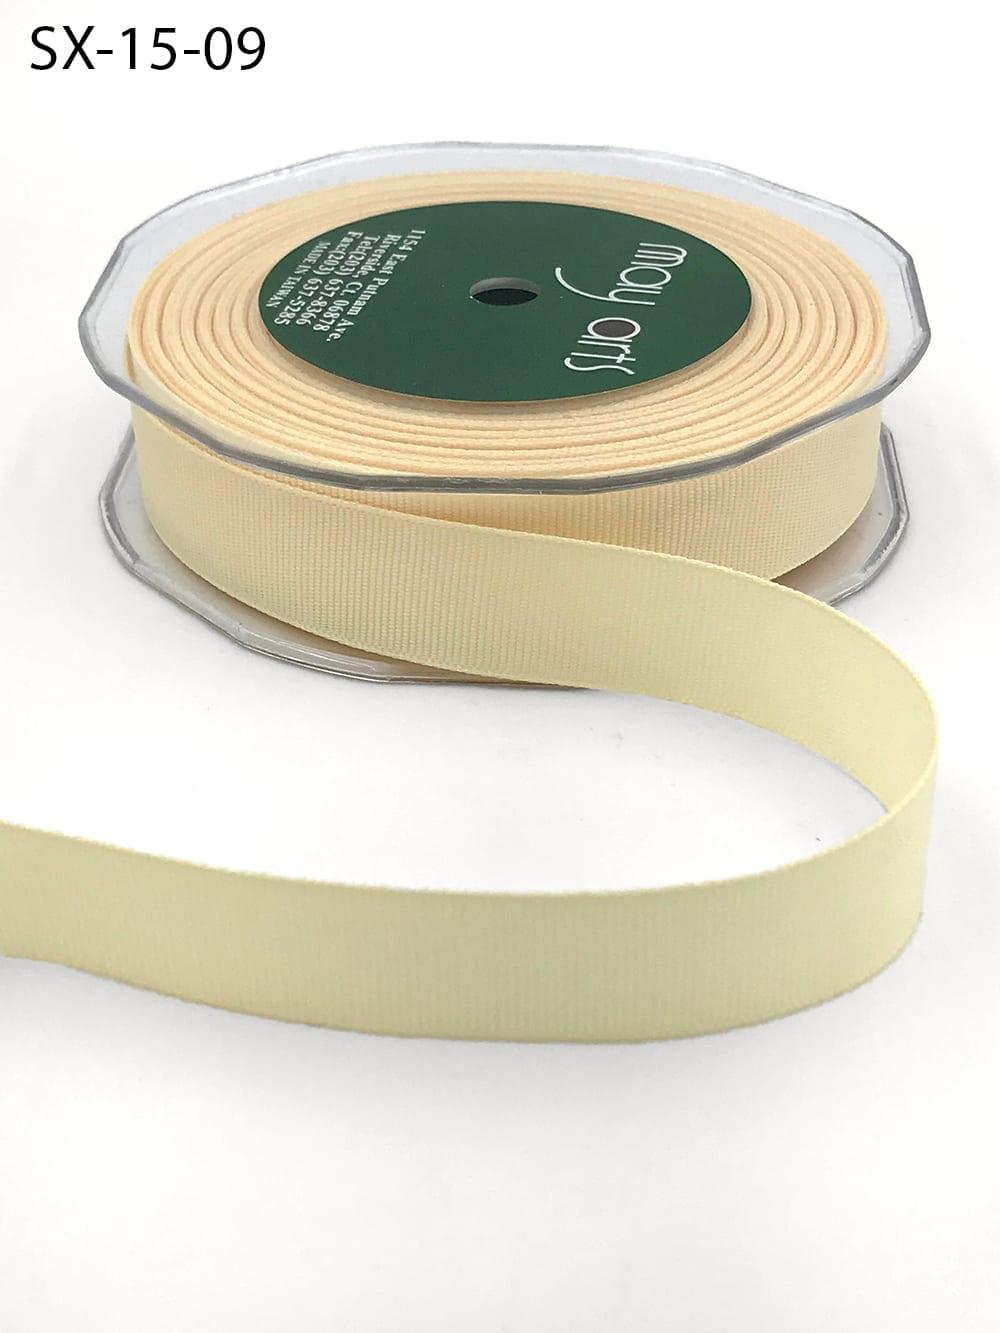 3/4 Inch Heavy-Weight (higher thread count) Classic Grosgrain Ribbon with Woven Edge - SX-34-09 Ivory